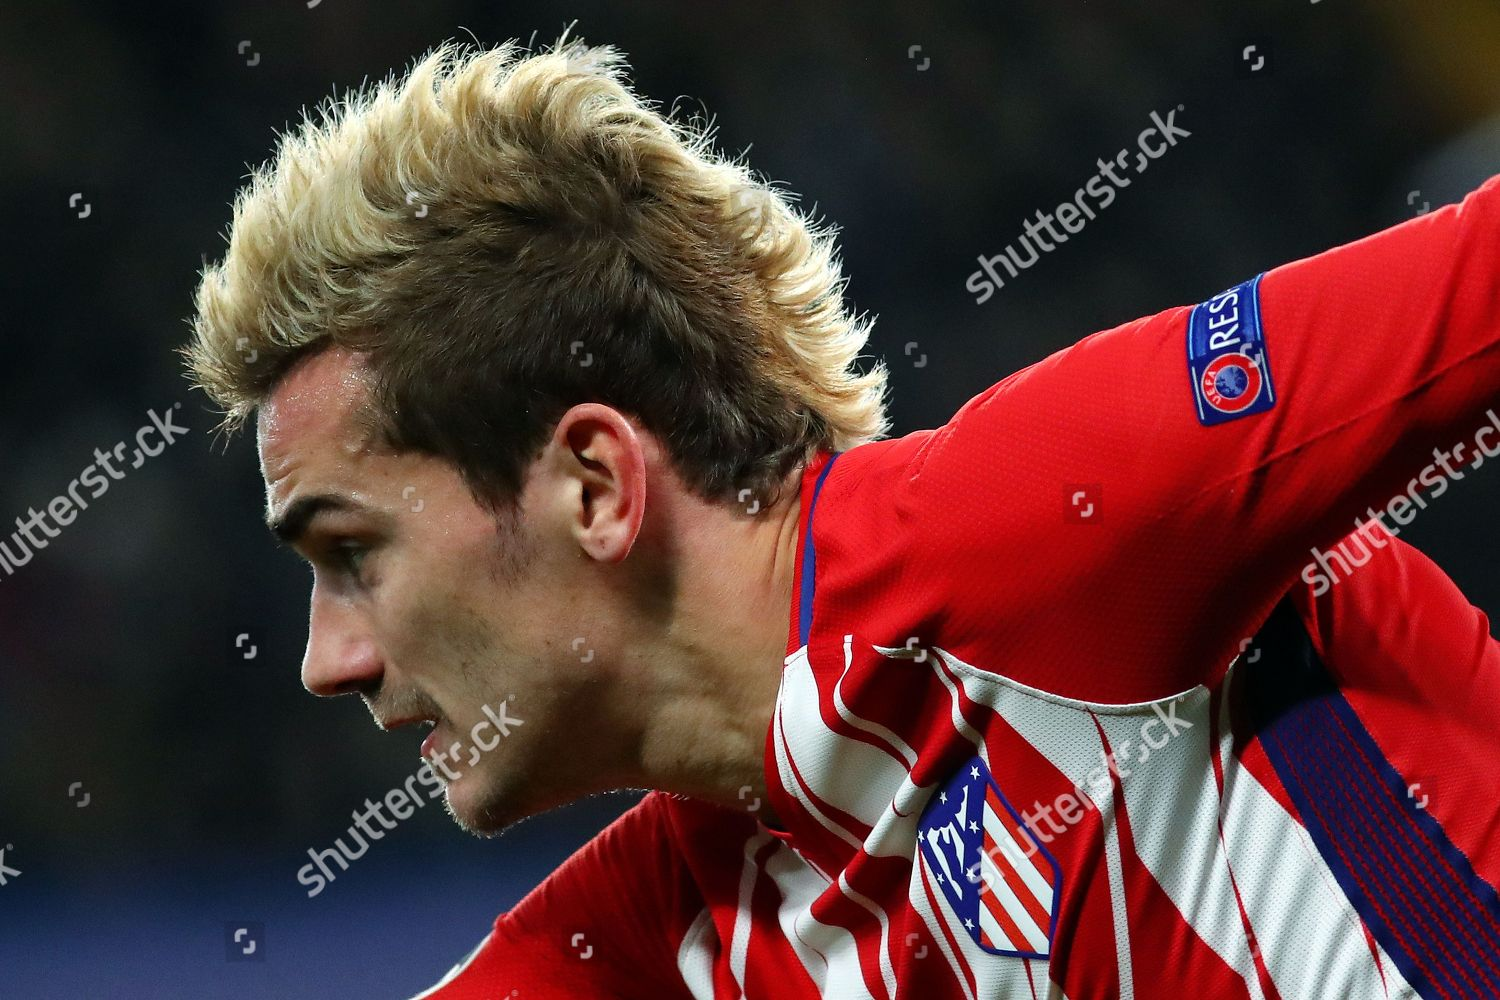 Antoine Griezmann Atletico Madrid Sporting New Hairstyle Editorial Stock Photo Stock Image Shutterstock